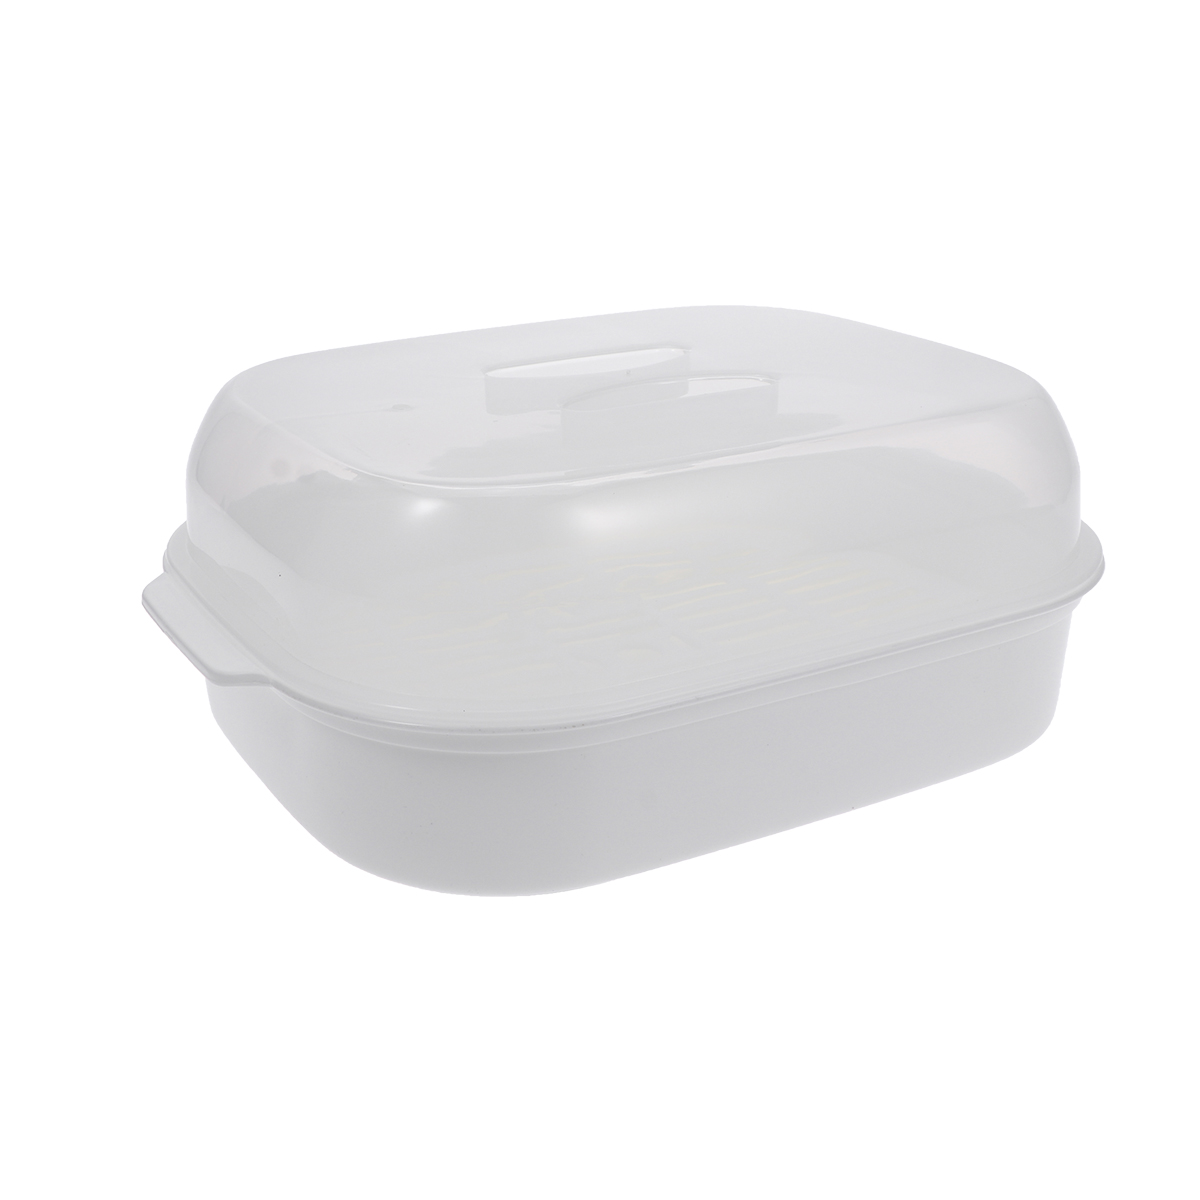 1 Pc Steamed Buns Steamer Microwave Oven Special Box Kitchen Steamer Heats Up For Cooking Kitchen Accessories (White)